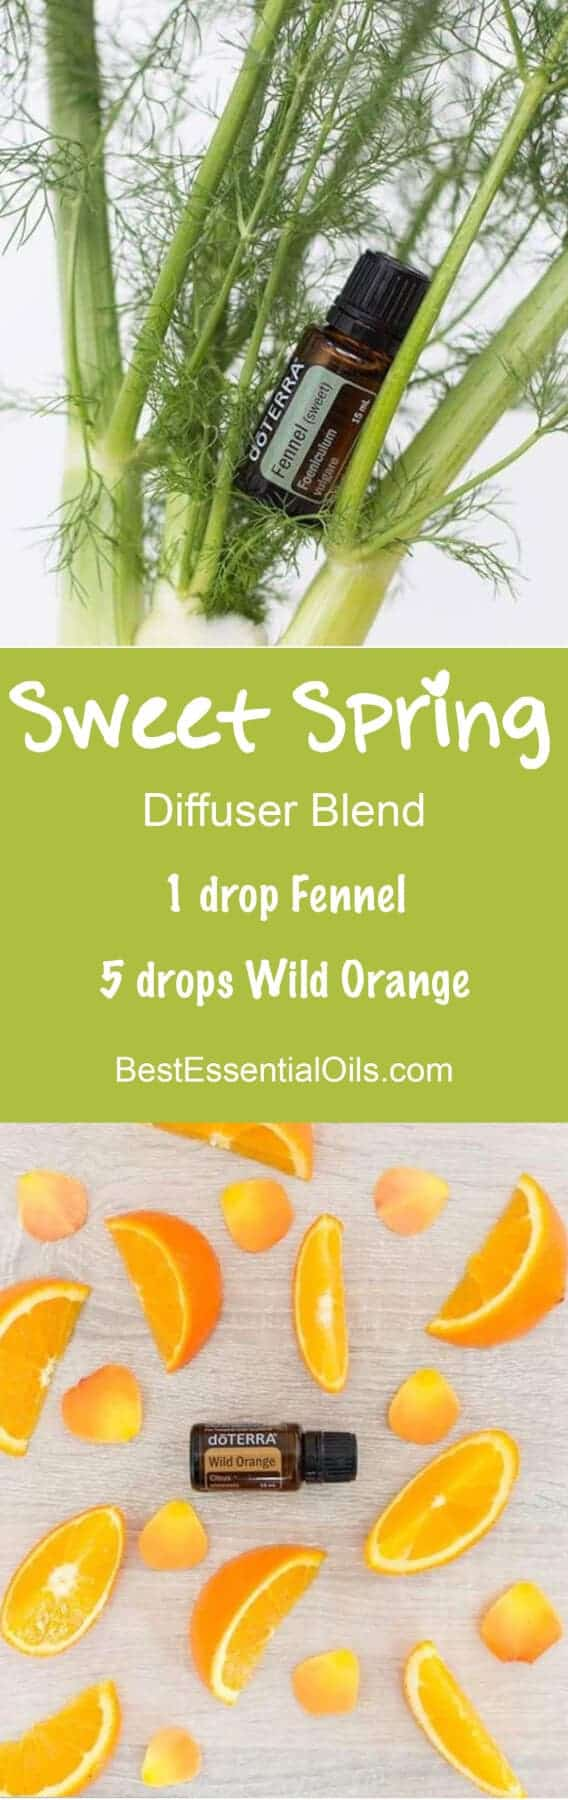 Doterra Fennel Essential Oil Uses With Food And Diffuser